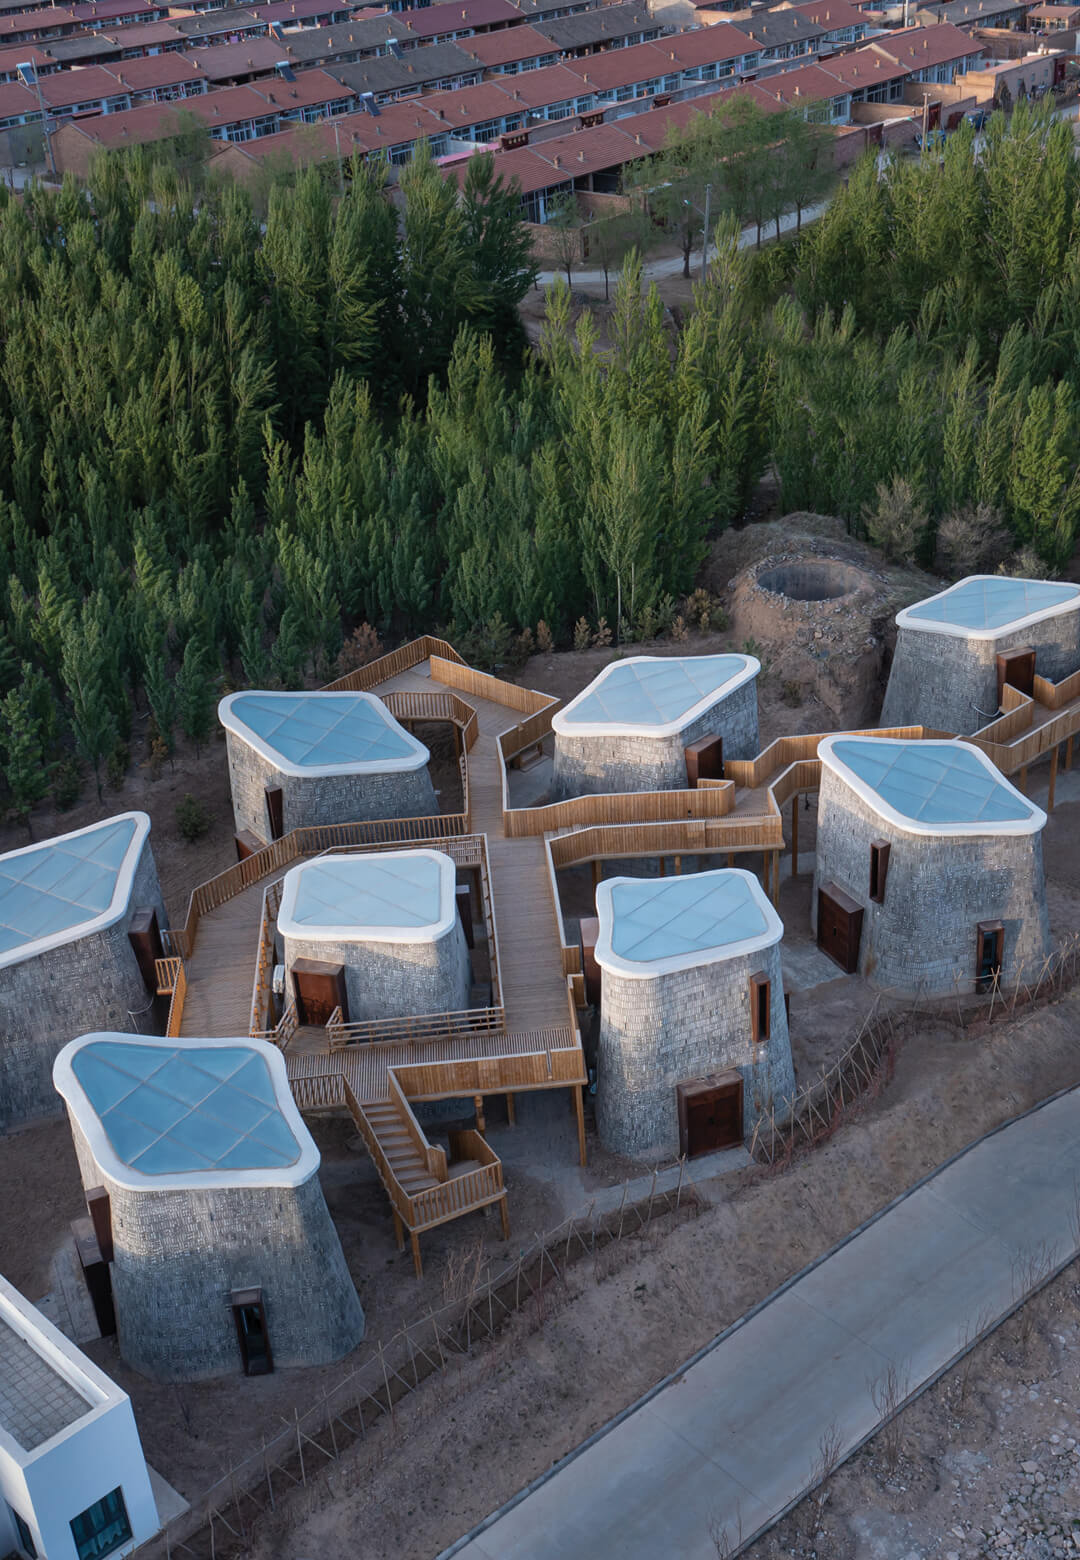 Grotto Retreat Xiyaotou by A( )VOID is made of a cluster of nine interconnected vertical pods   Grotto Retreat Xiyaotou by A( )VOID   STIRworld